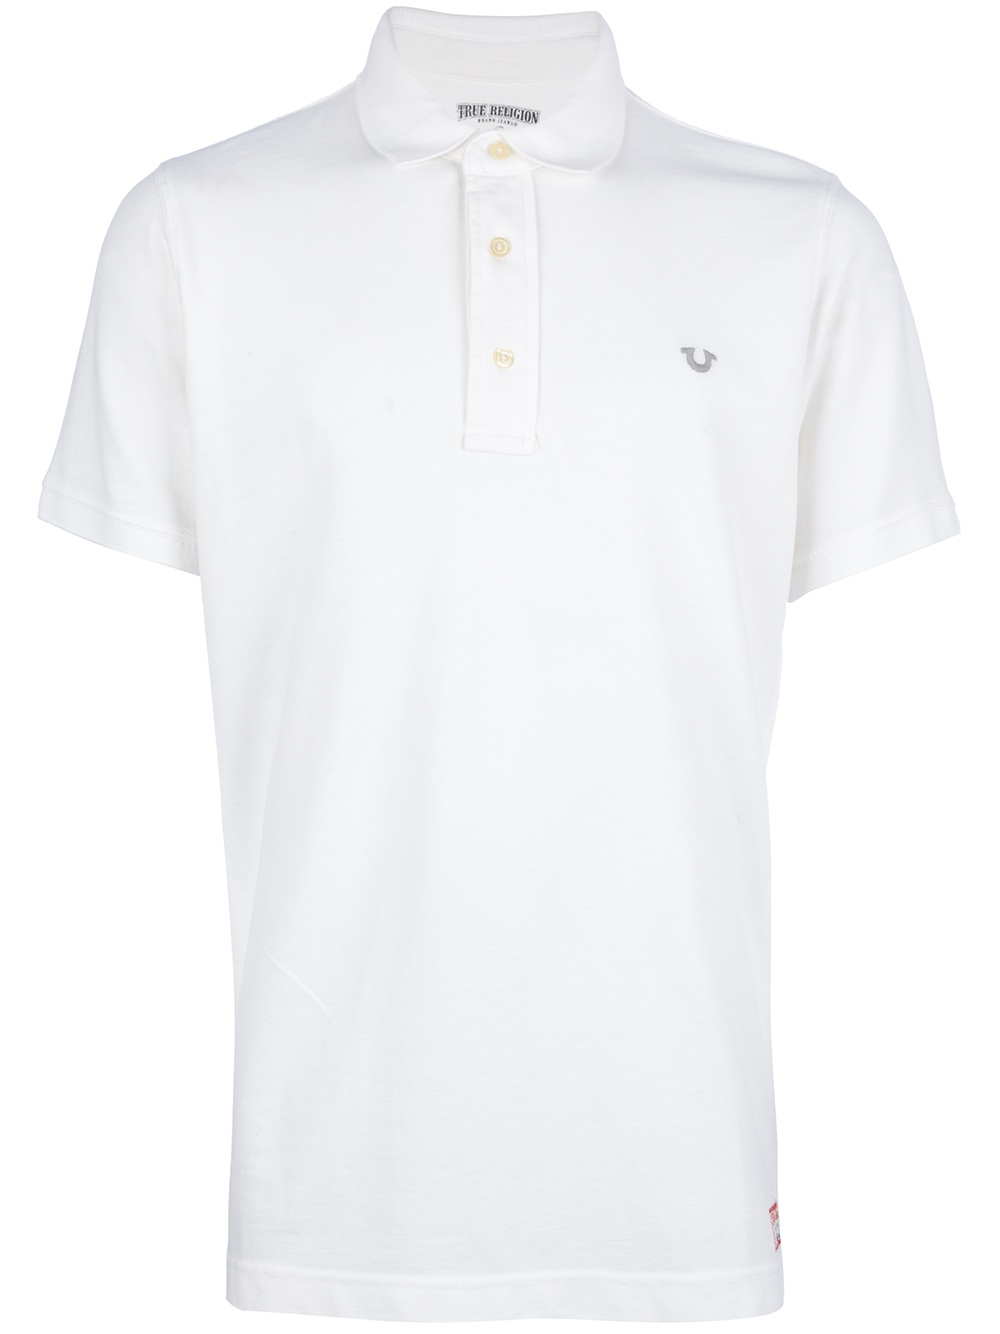 True religion Classic Polo Shirt in White for Men | Lyst